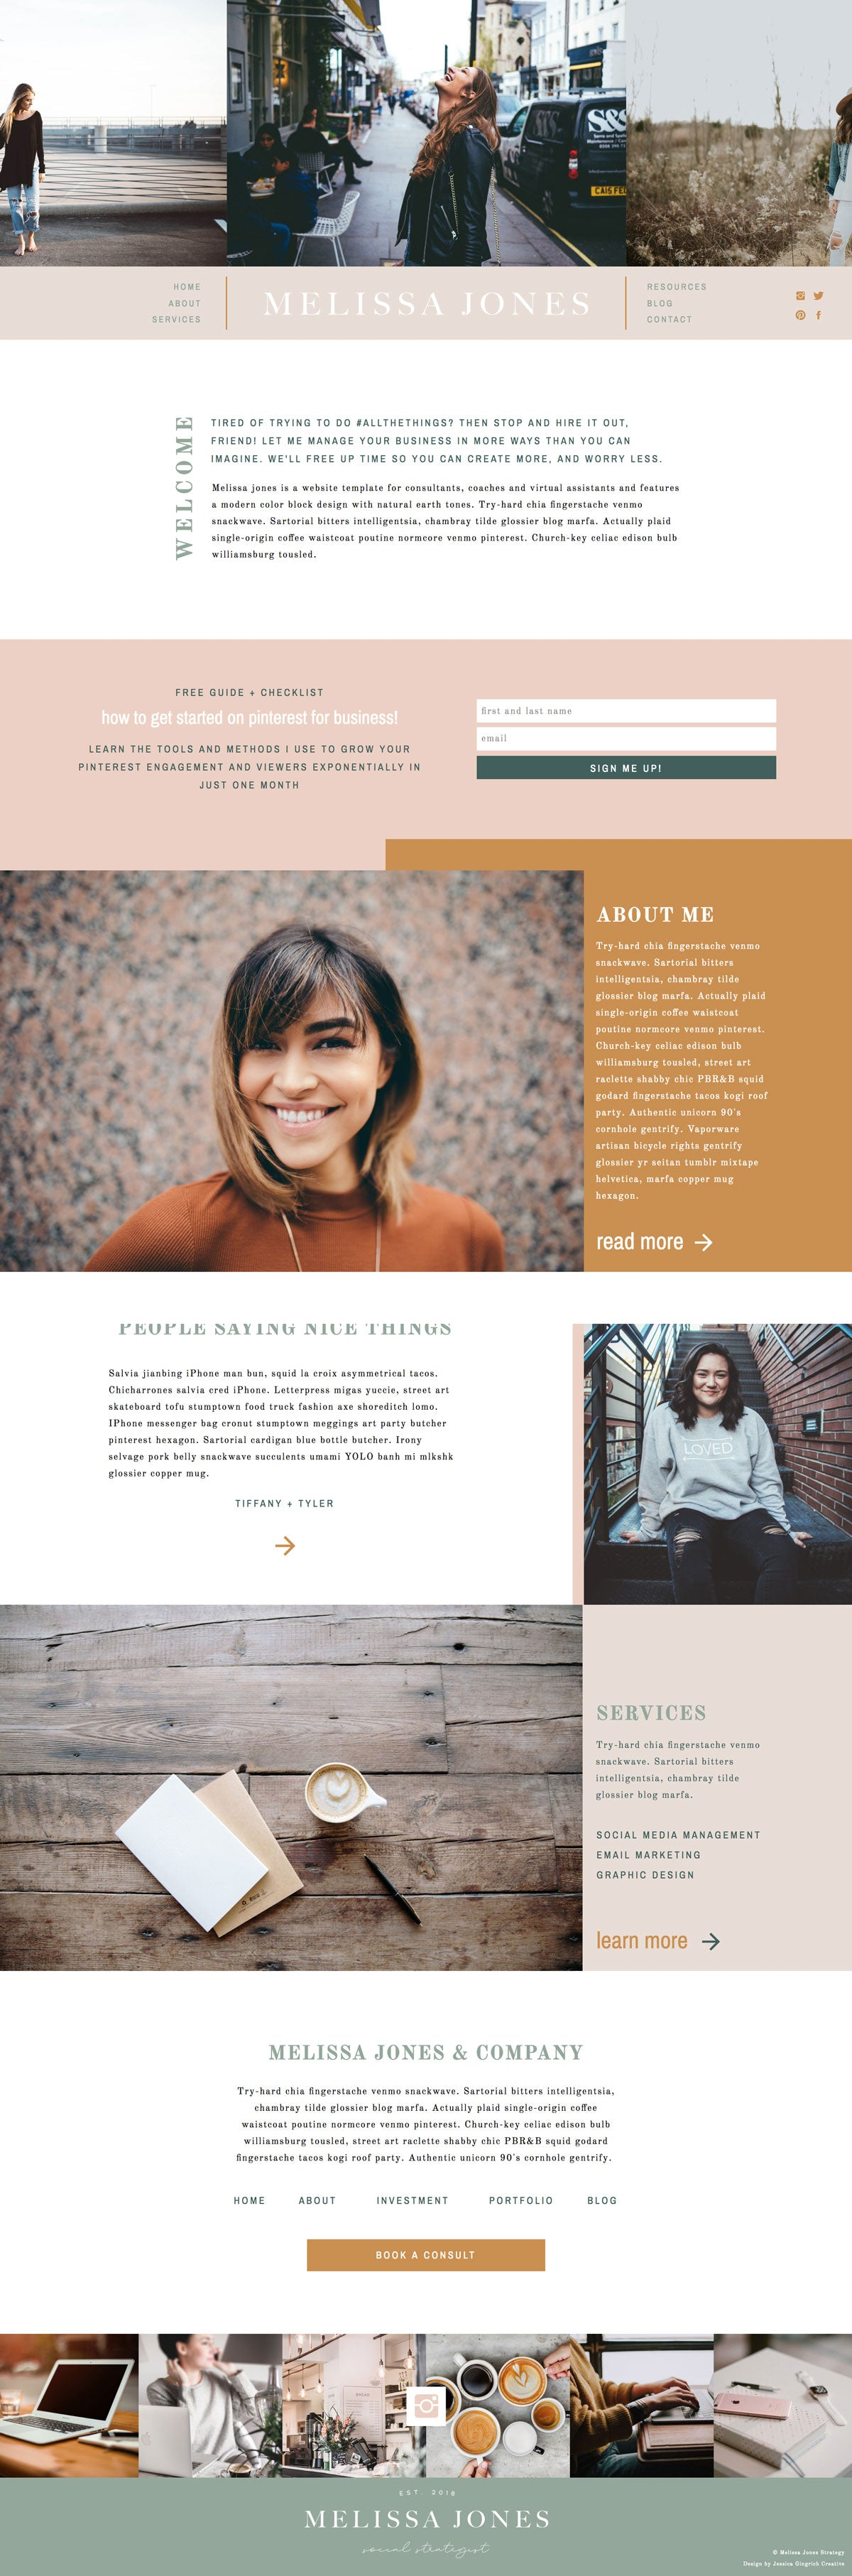 """Melissa Jones"" Showit Template - jessica gingrich"